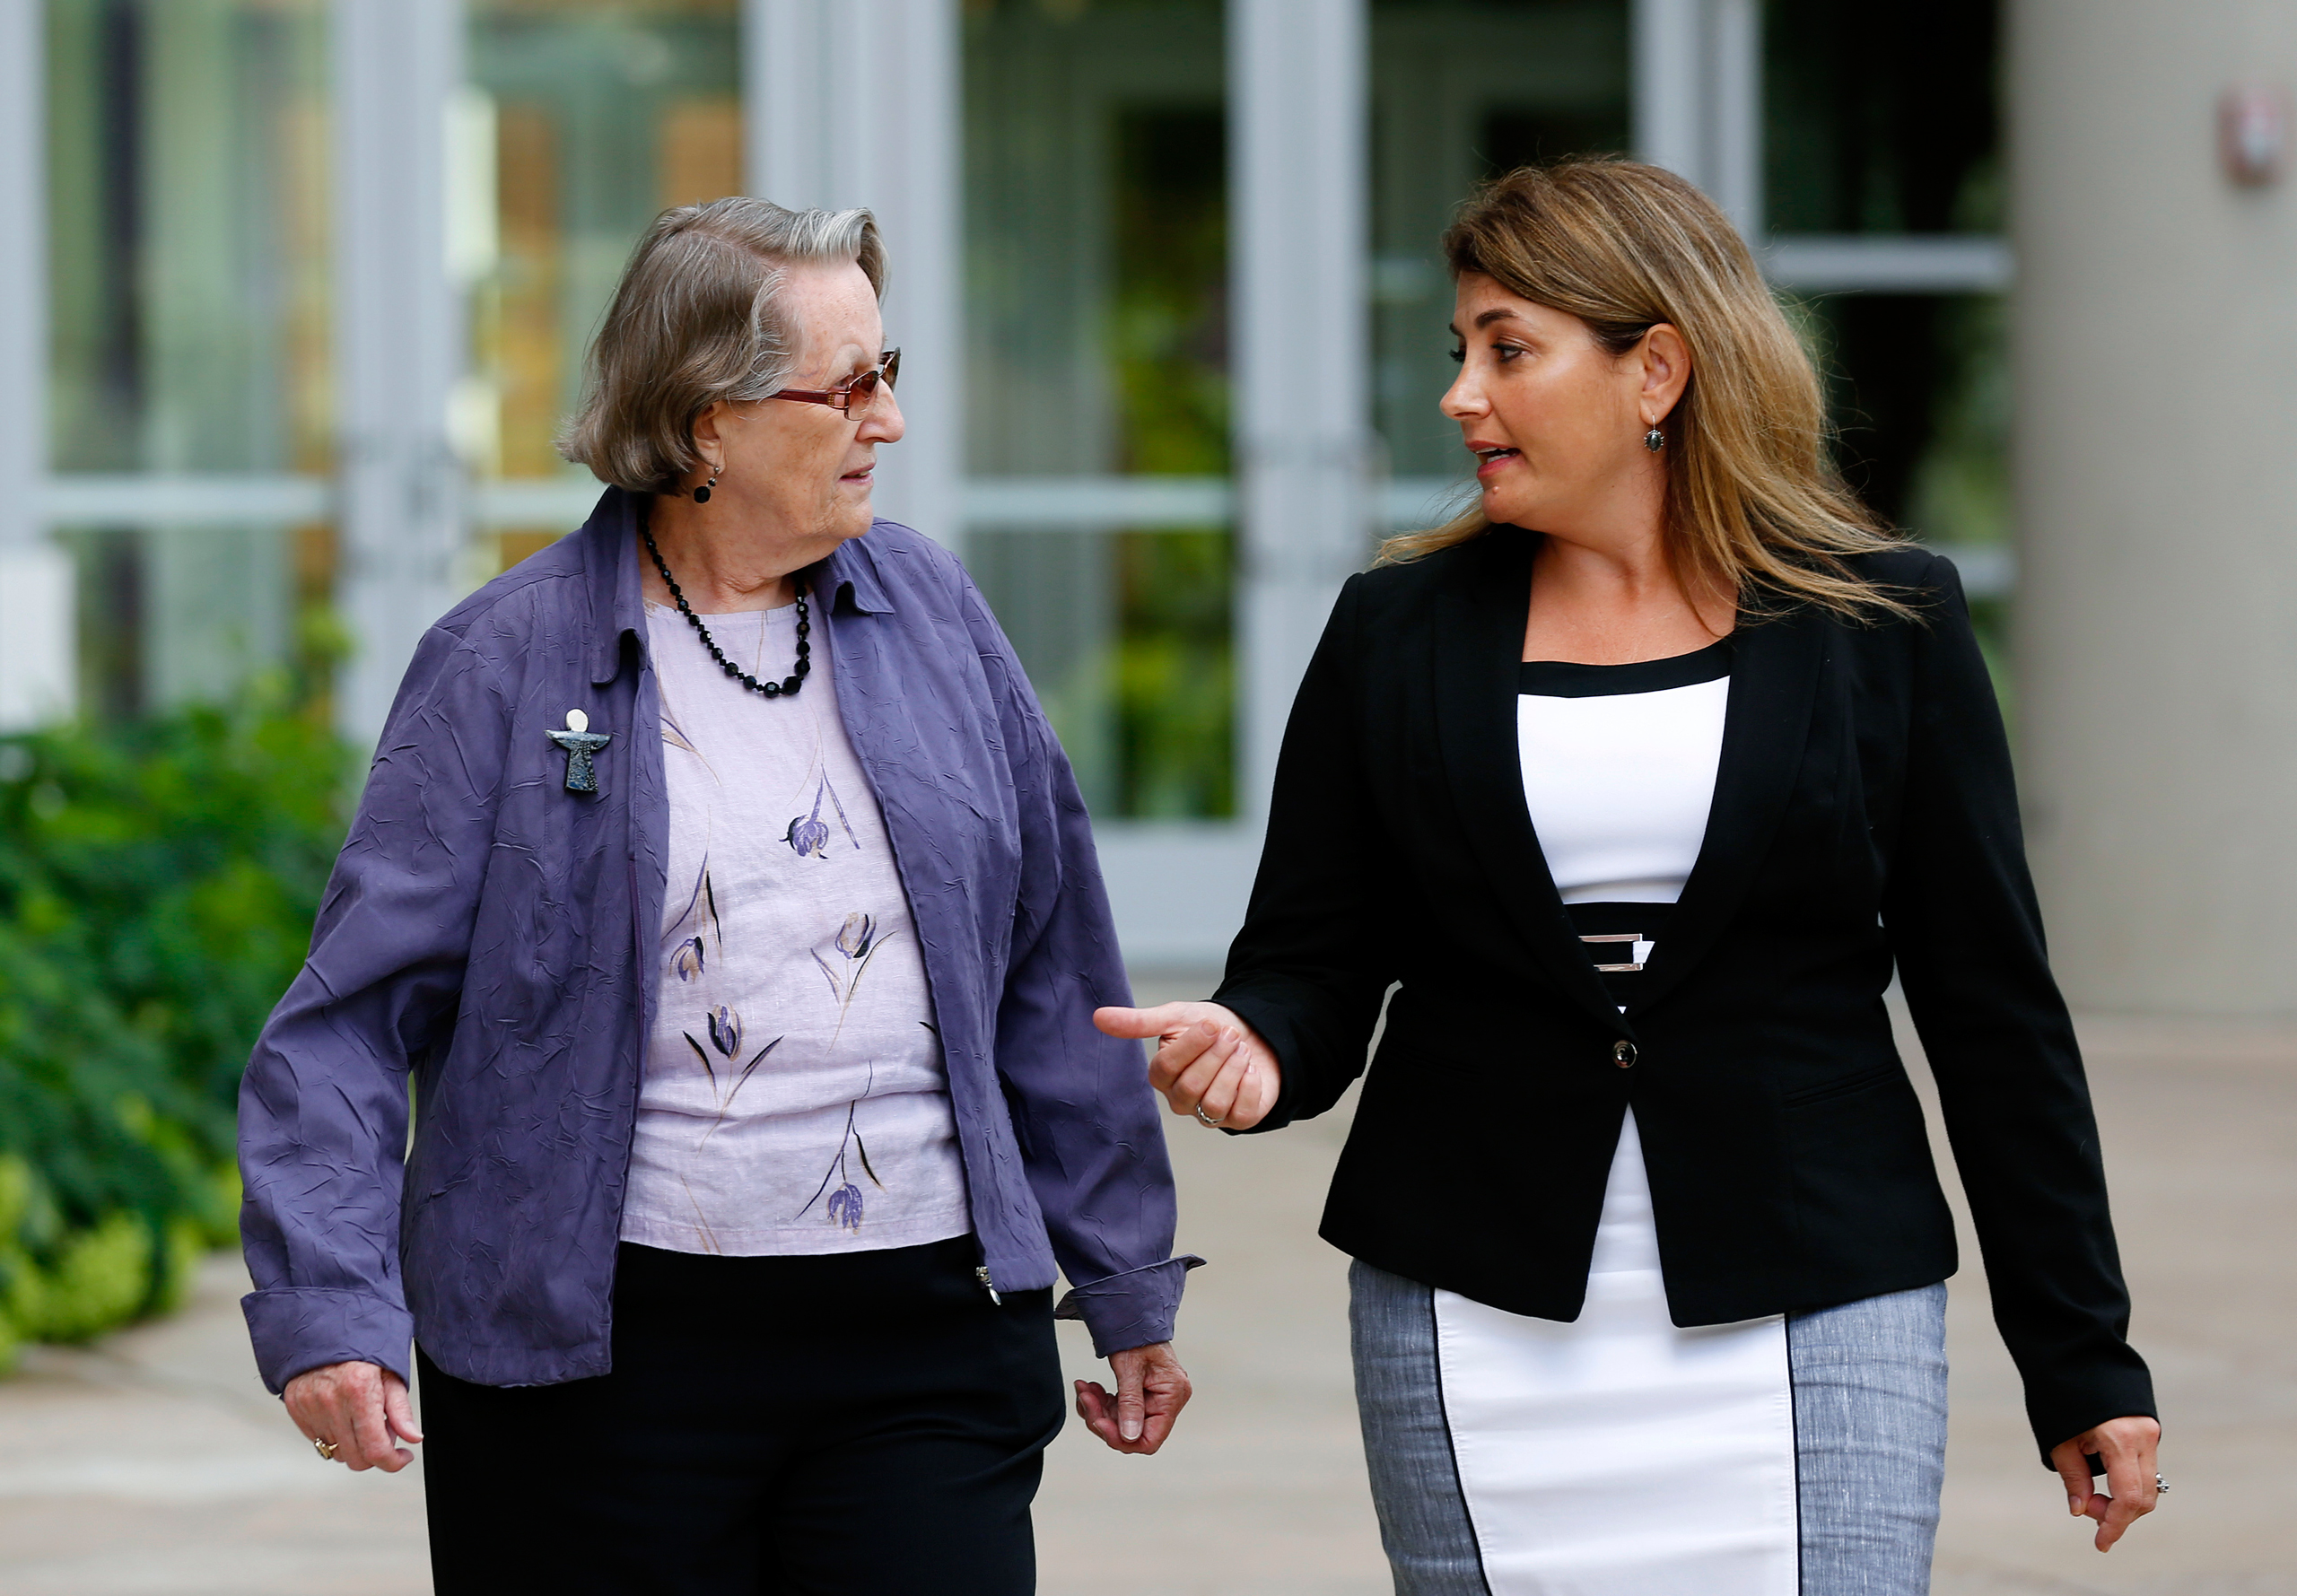 Angela McArthur, right, director of the Anatomy Bequest Program at the University of Minnesota Medical School, walks with Jean Larson, widow of a donor, in Minneapolis on Aug. 11, 2016.